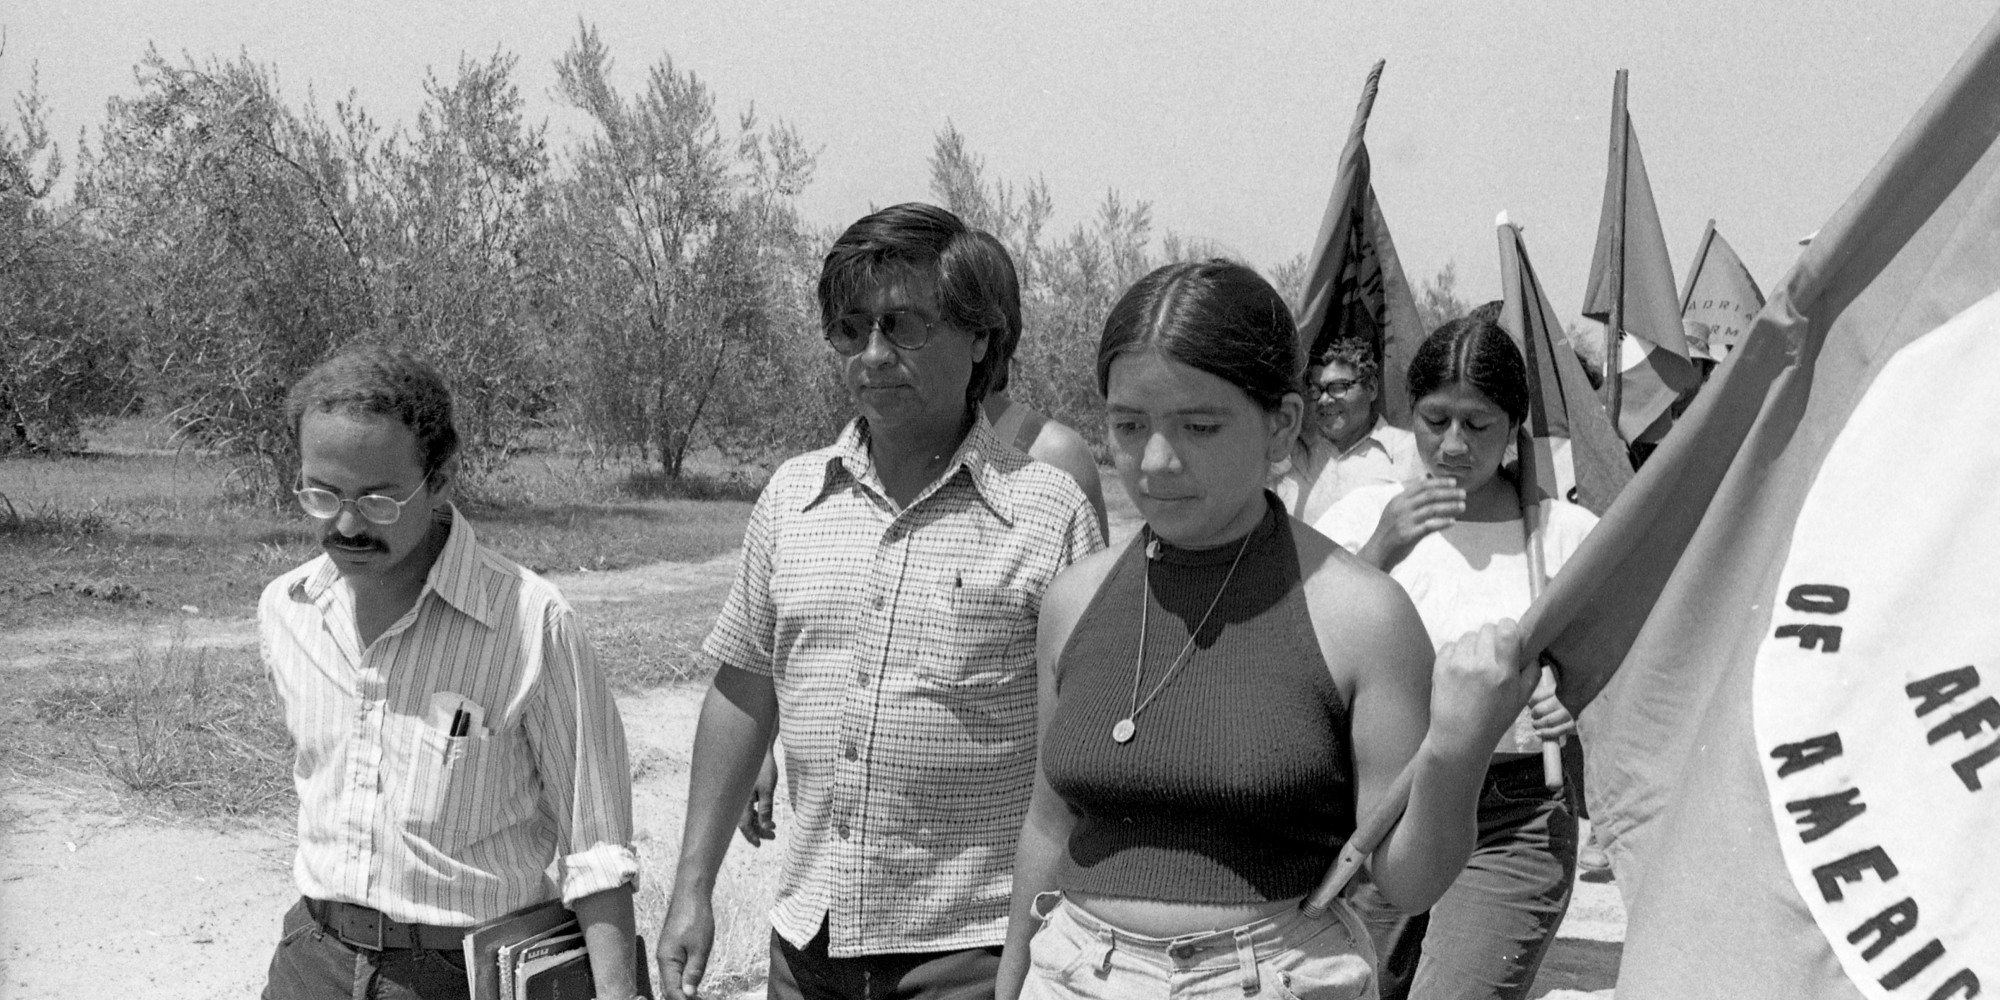 account of the life of cesar chavez - the leadership of cesar chavez: an examination of his leadership style, accomplishments, and contributions to society cesario estrada chavez, or cesar chavez, as he is more commonly known.